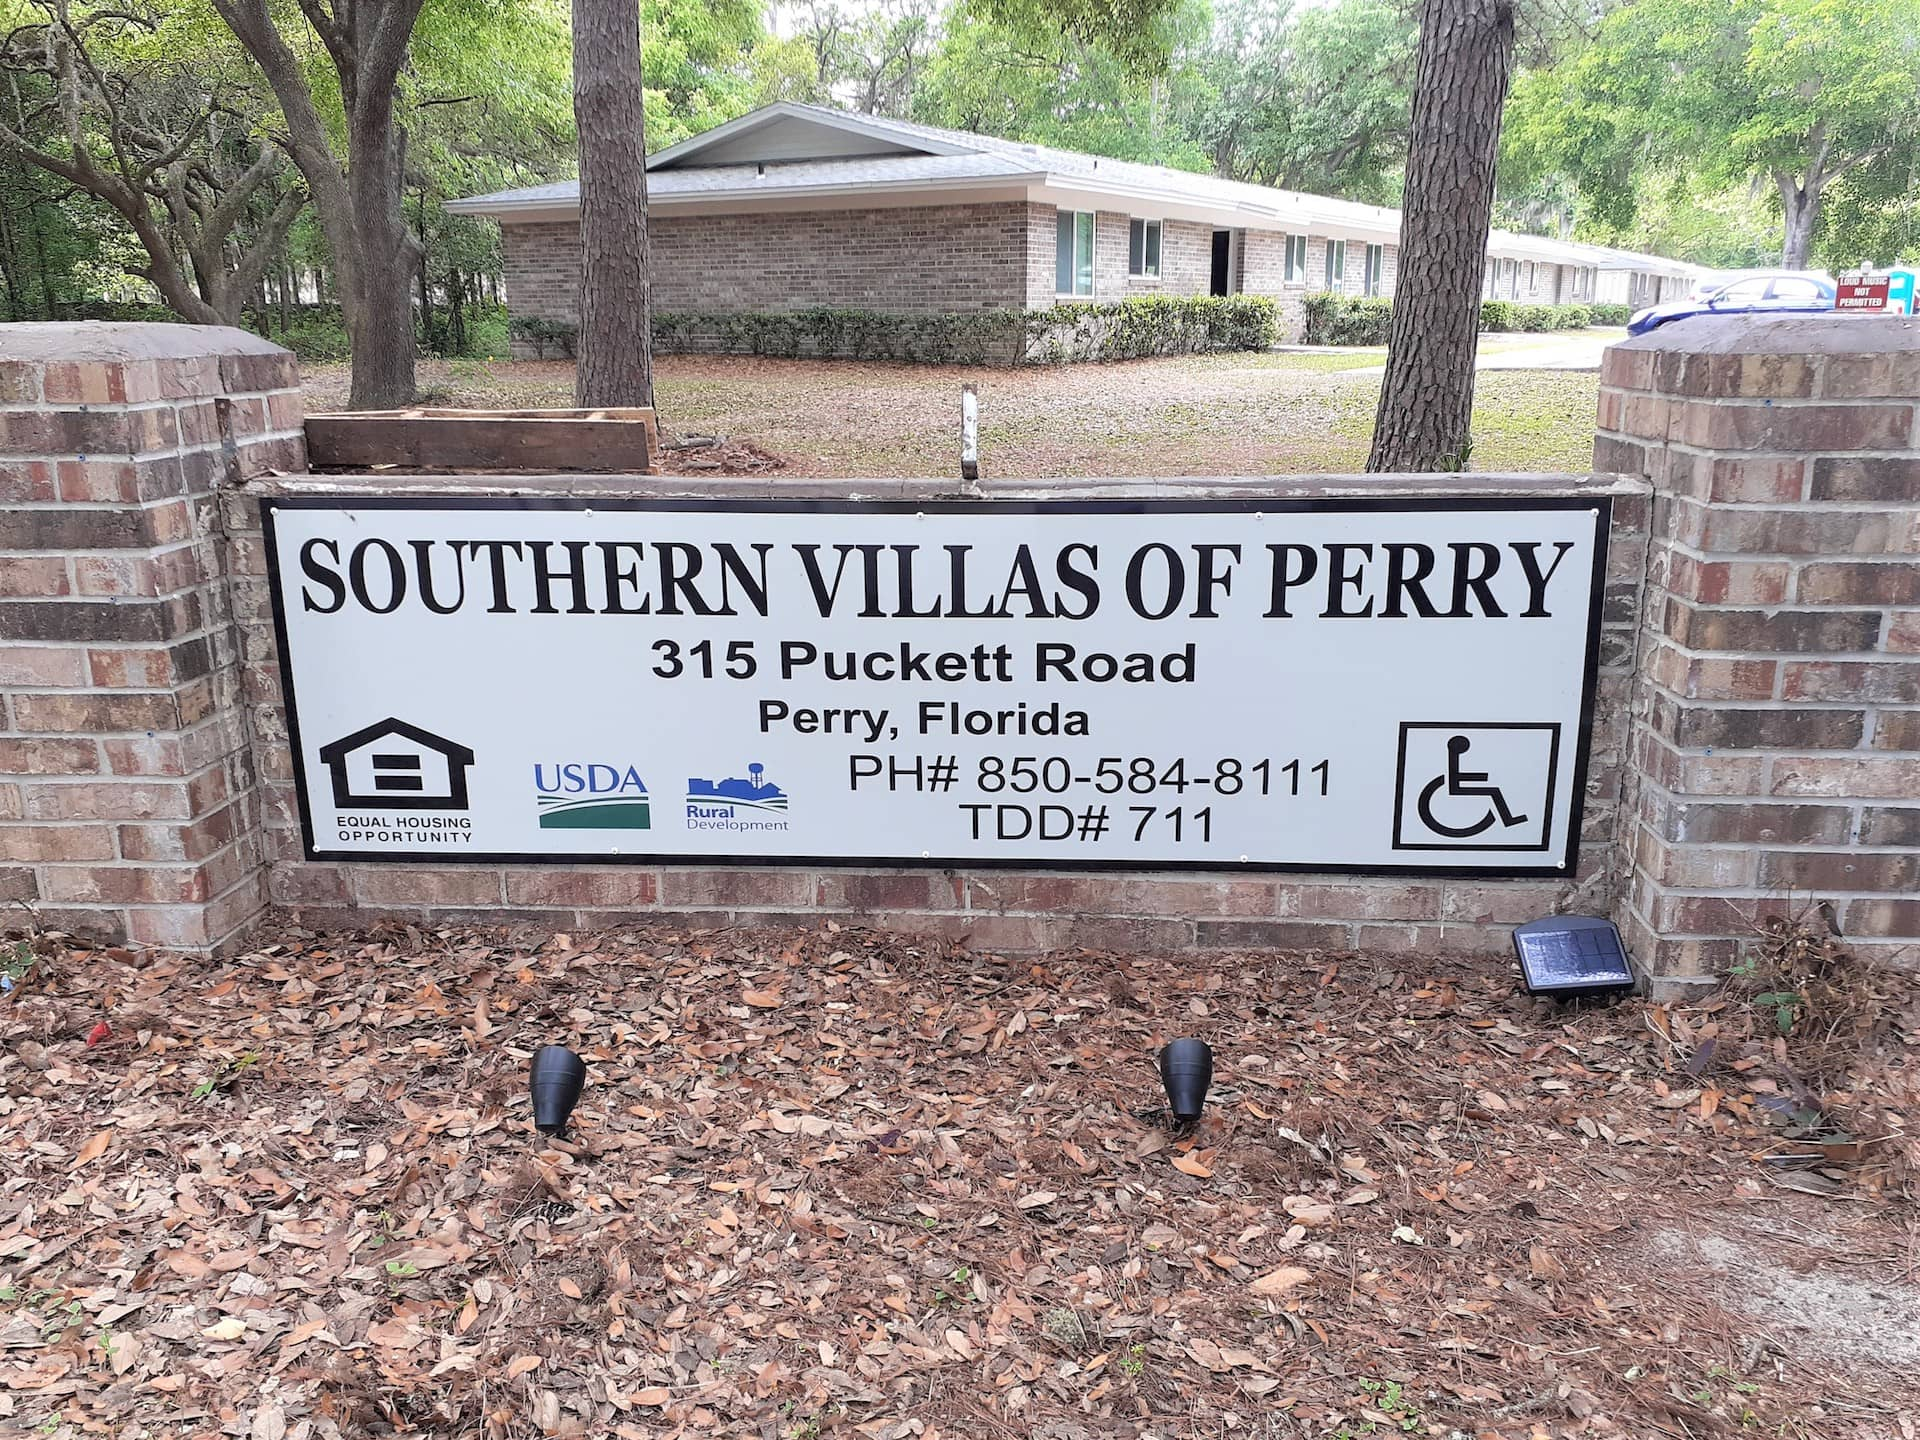 Southern Villas of Perry